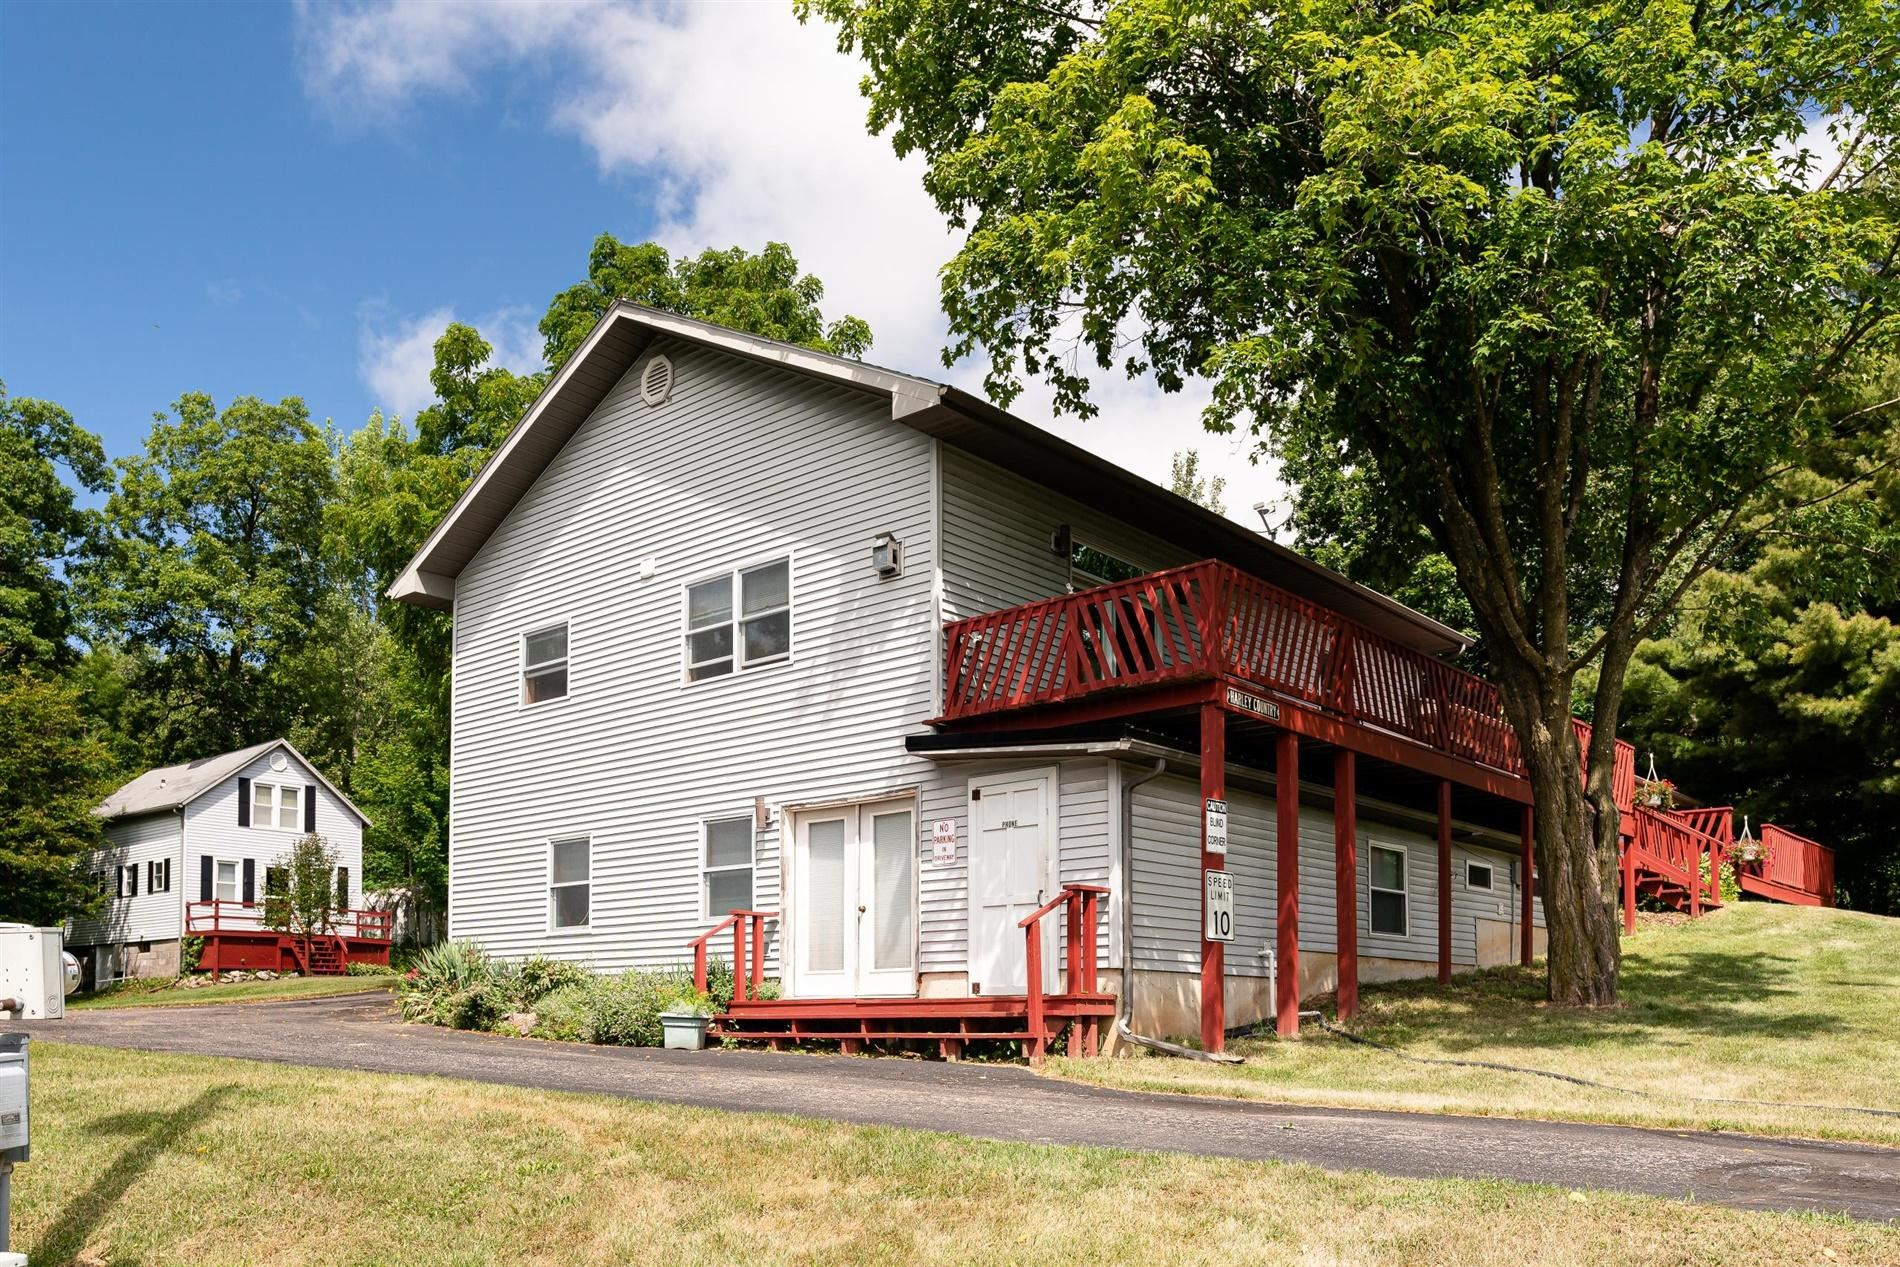 S2669 County Road V, Union, WI 54634 - MLS#: 1706033